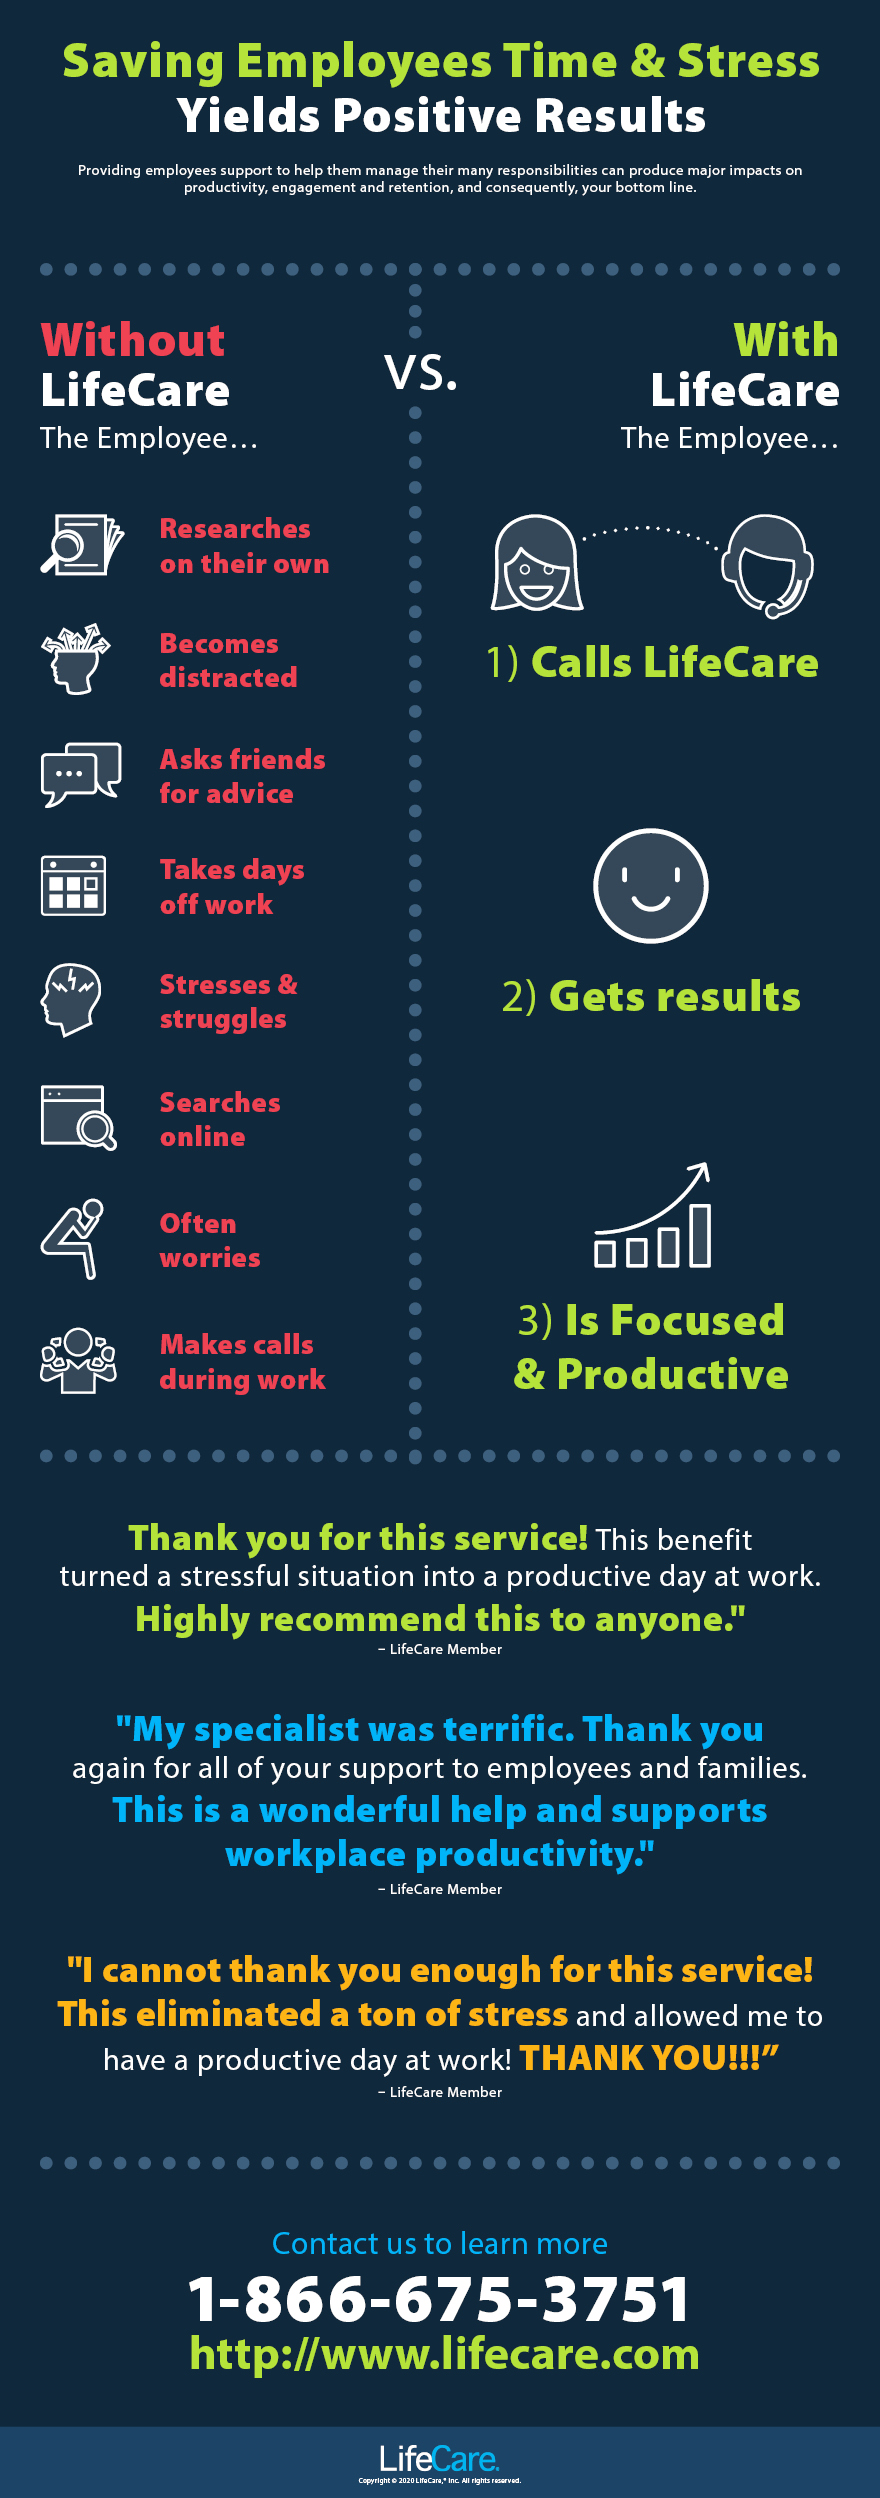 Saving Employees Time & Stress Yields Positive Results